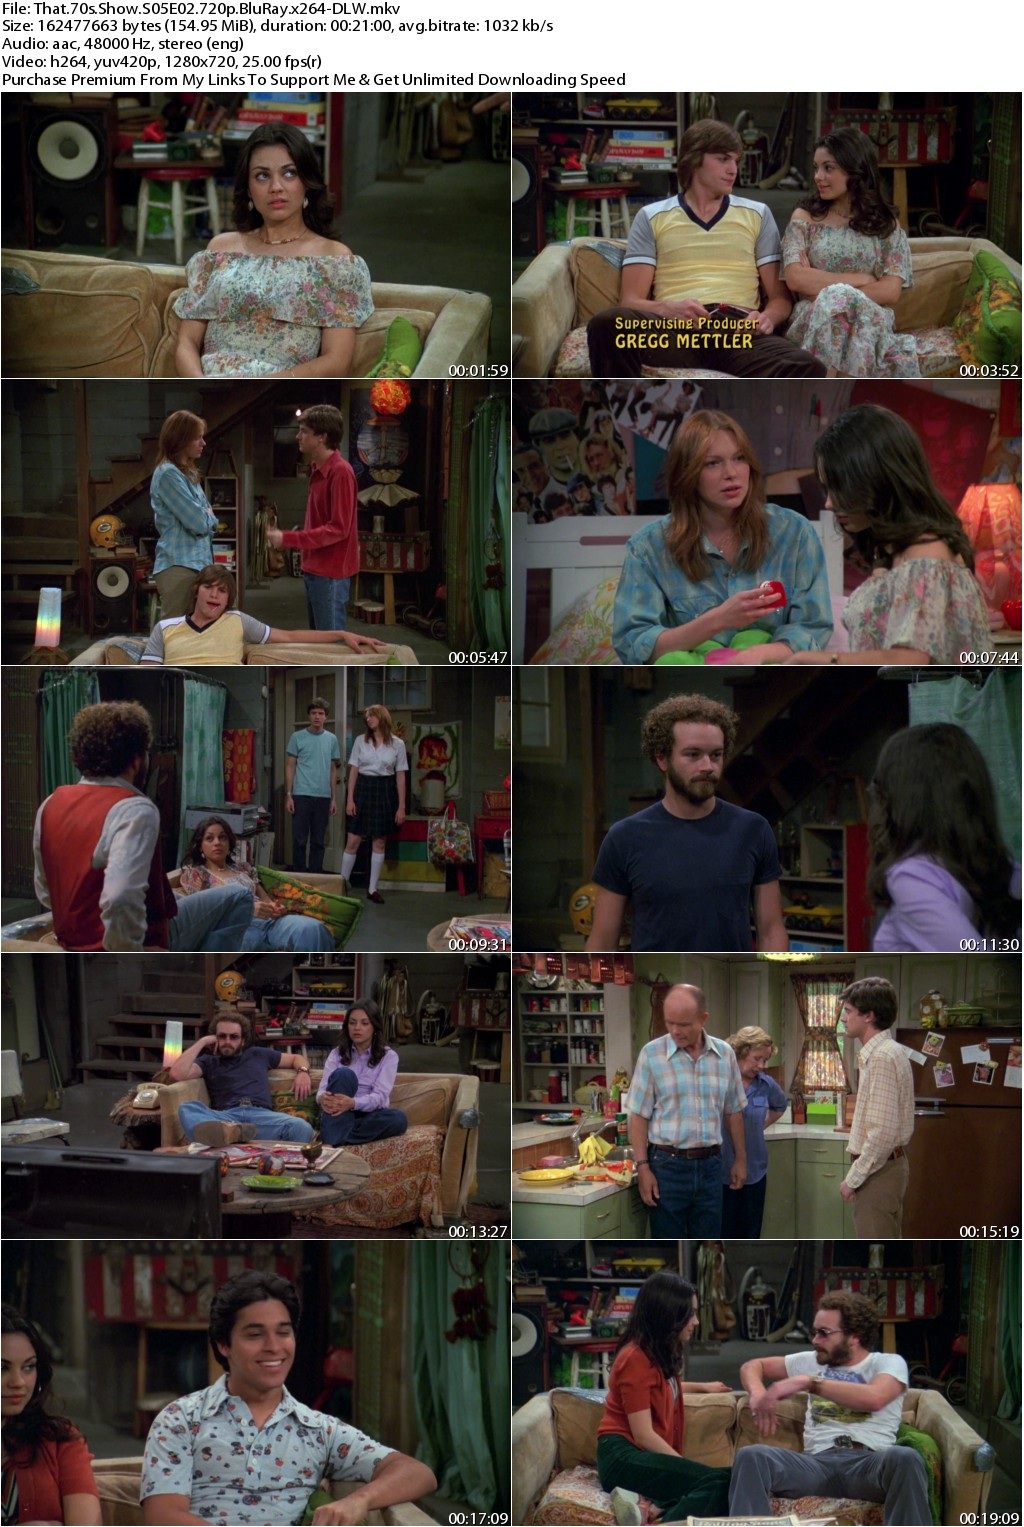 That 70s Show Season 05 Complete 720p BluRay x264-DLW